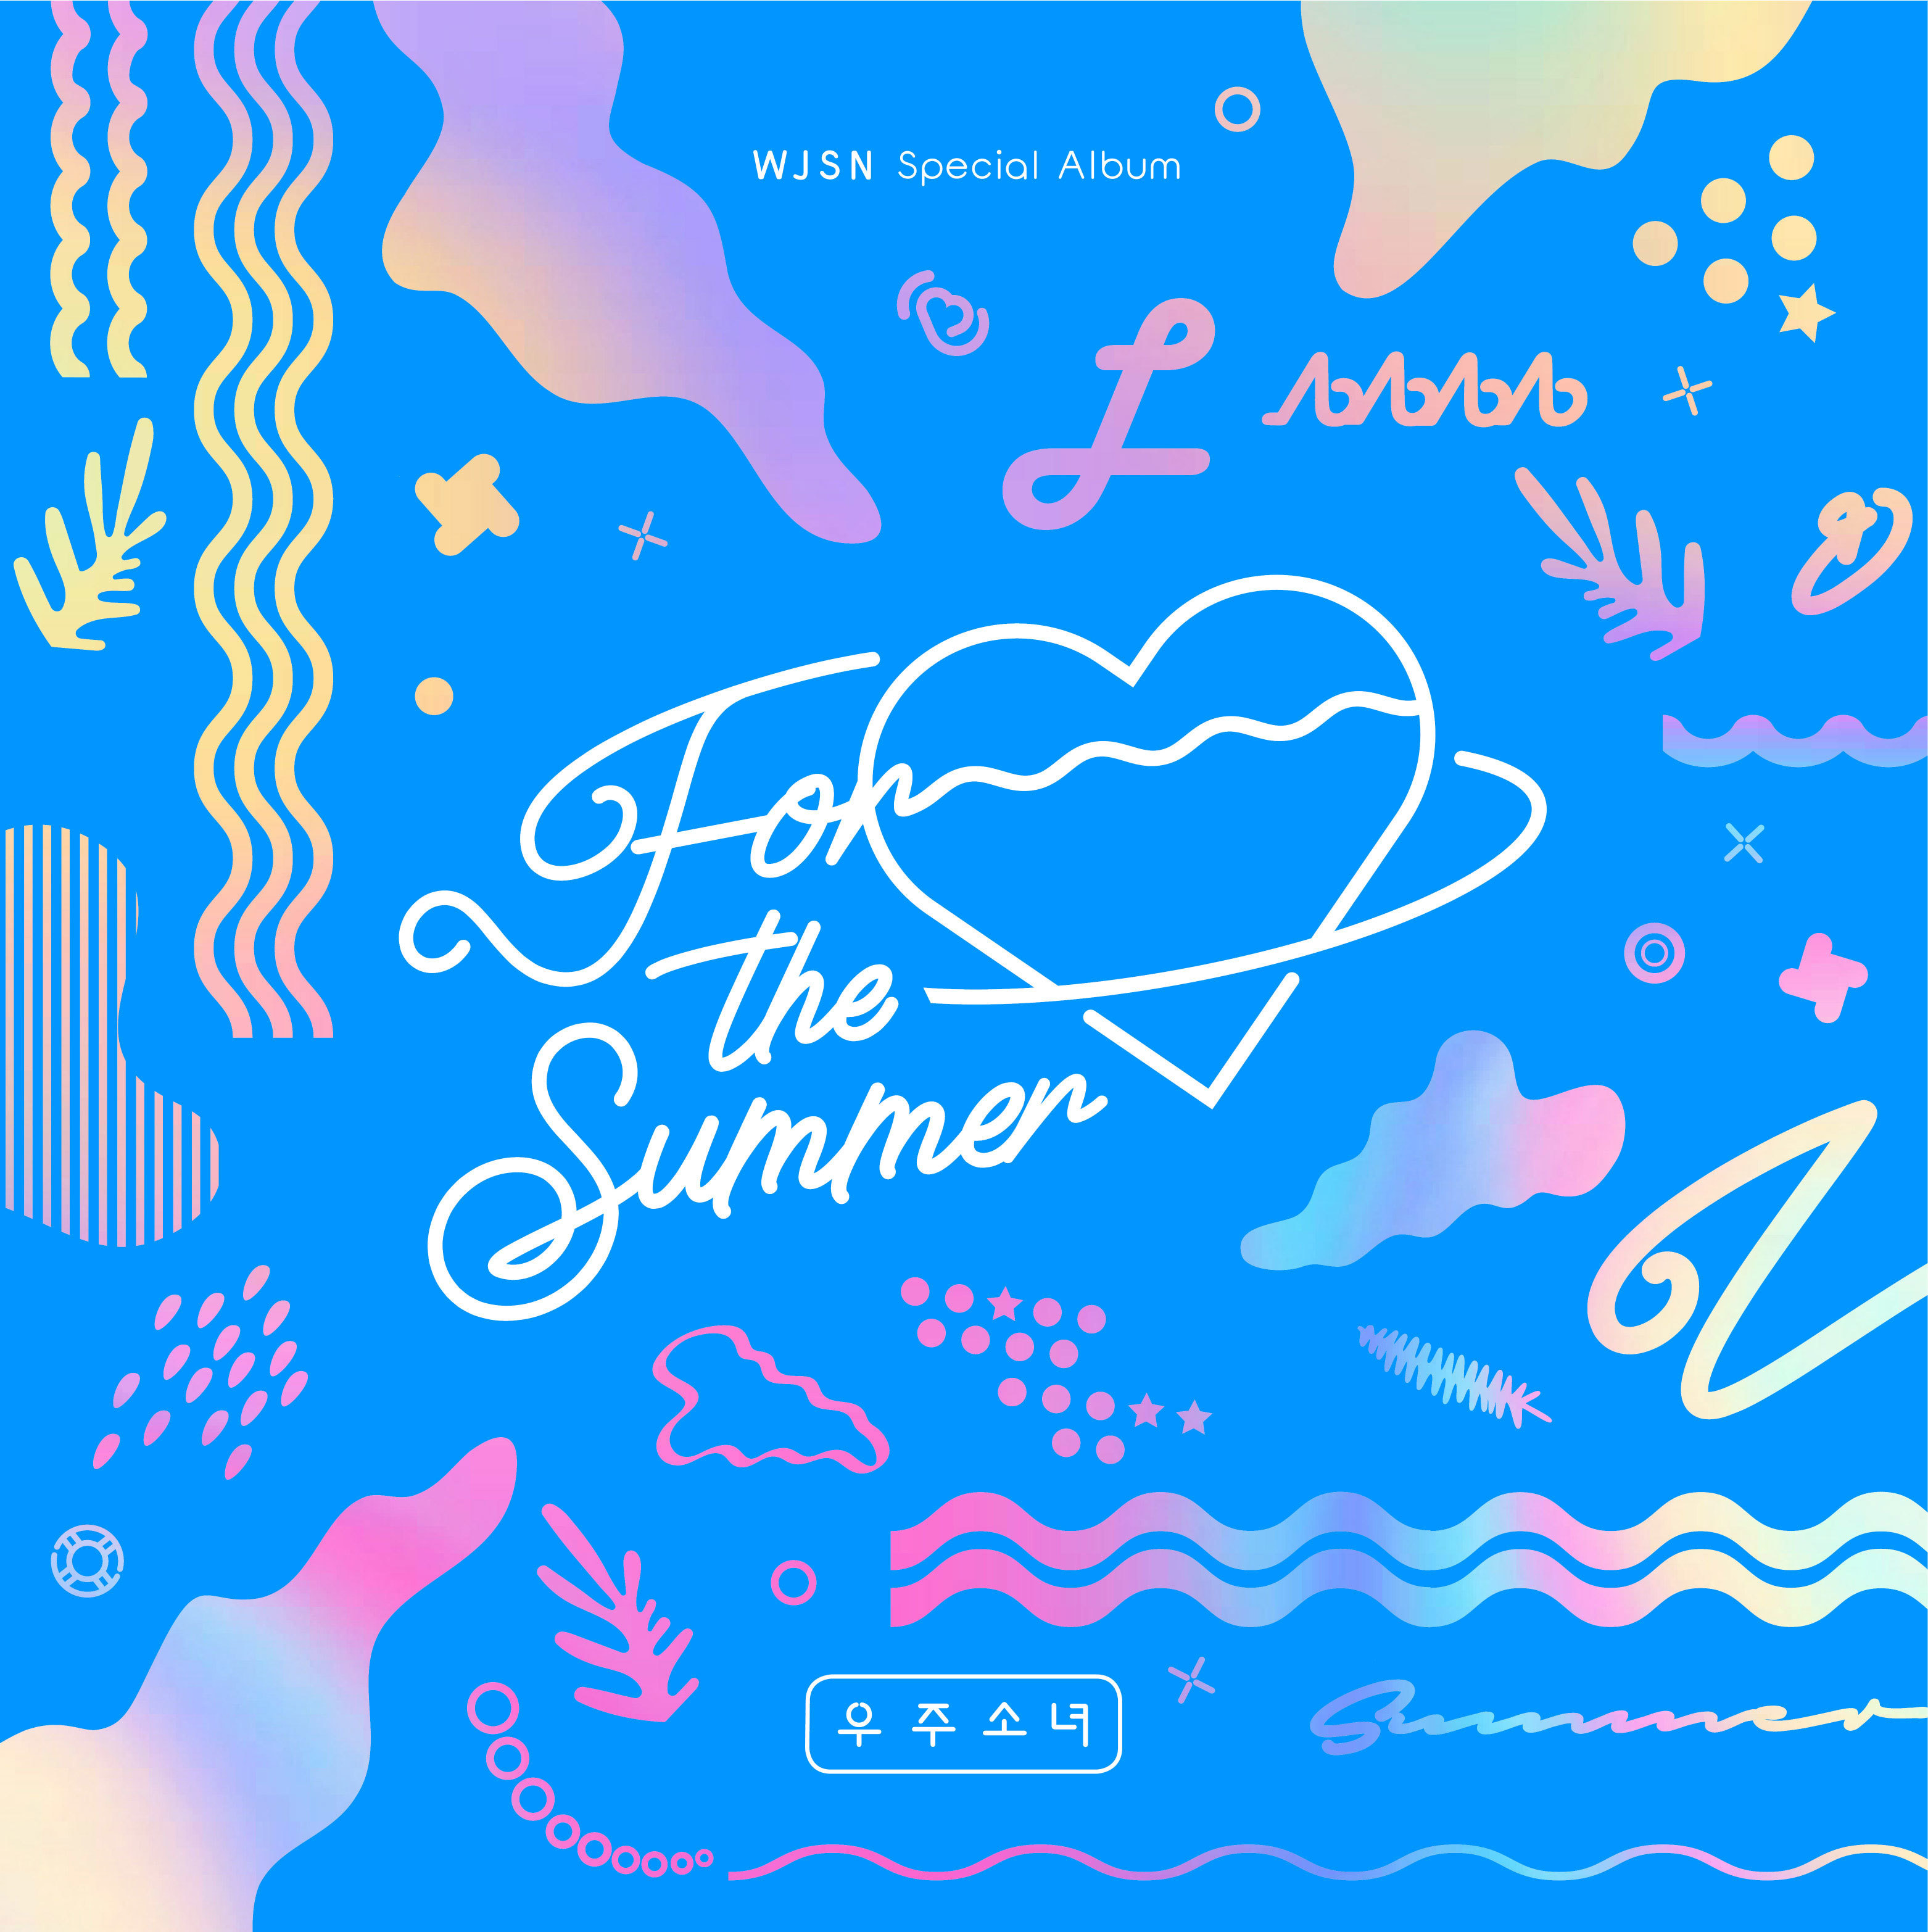 【WJSN】「For the Summer: Special Album」 全3種